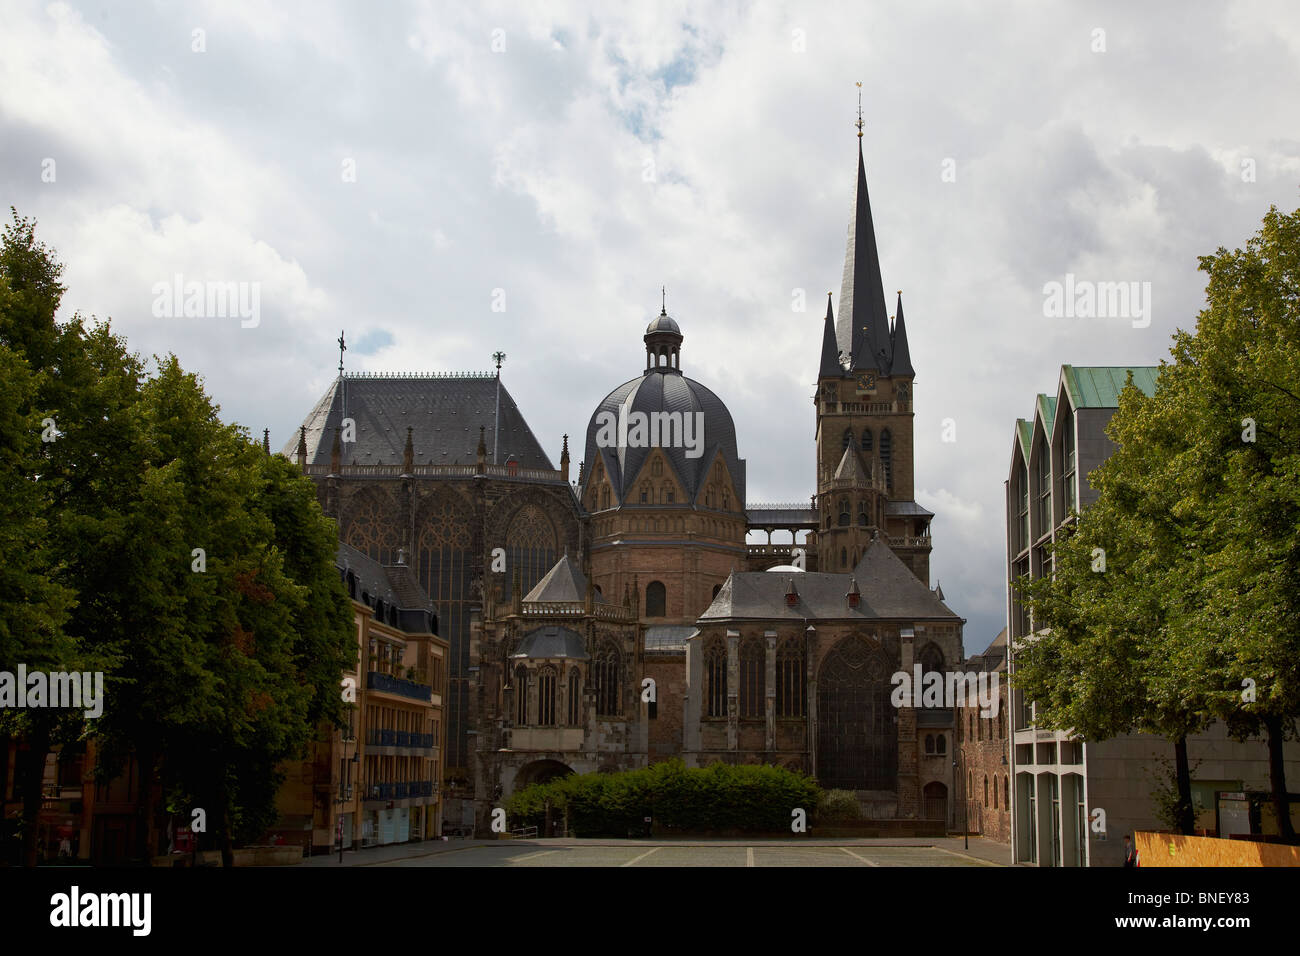 The cathedral in Aachen, Germany Stock Photo